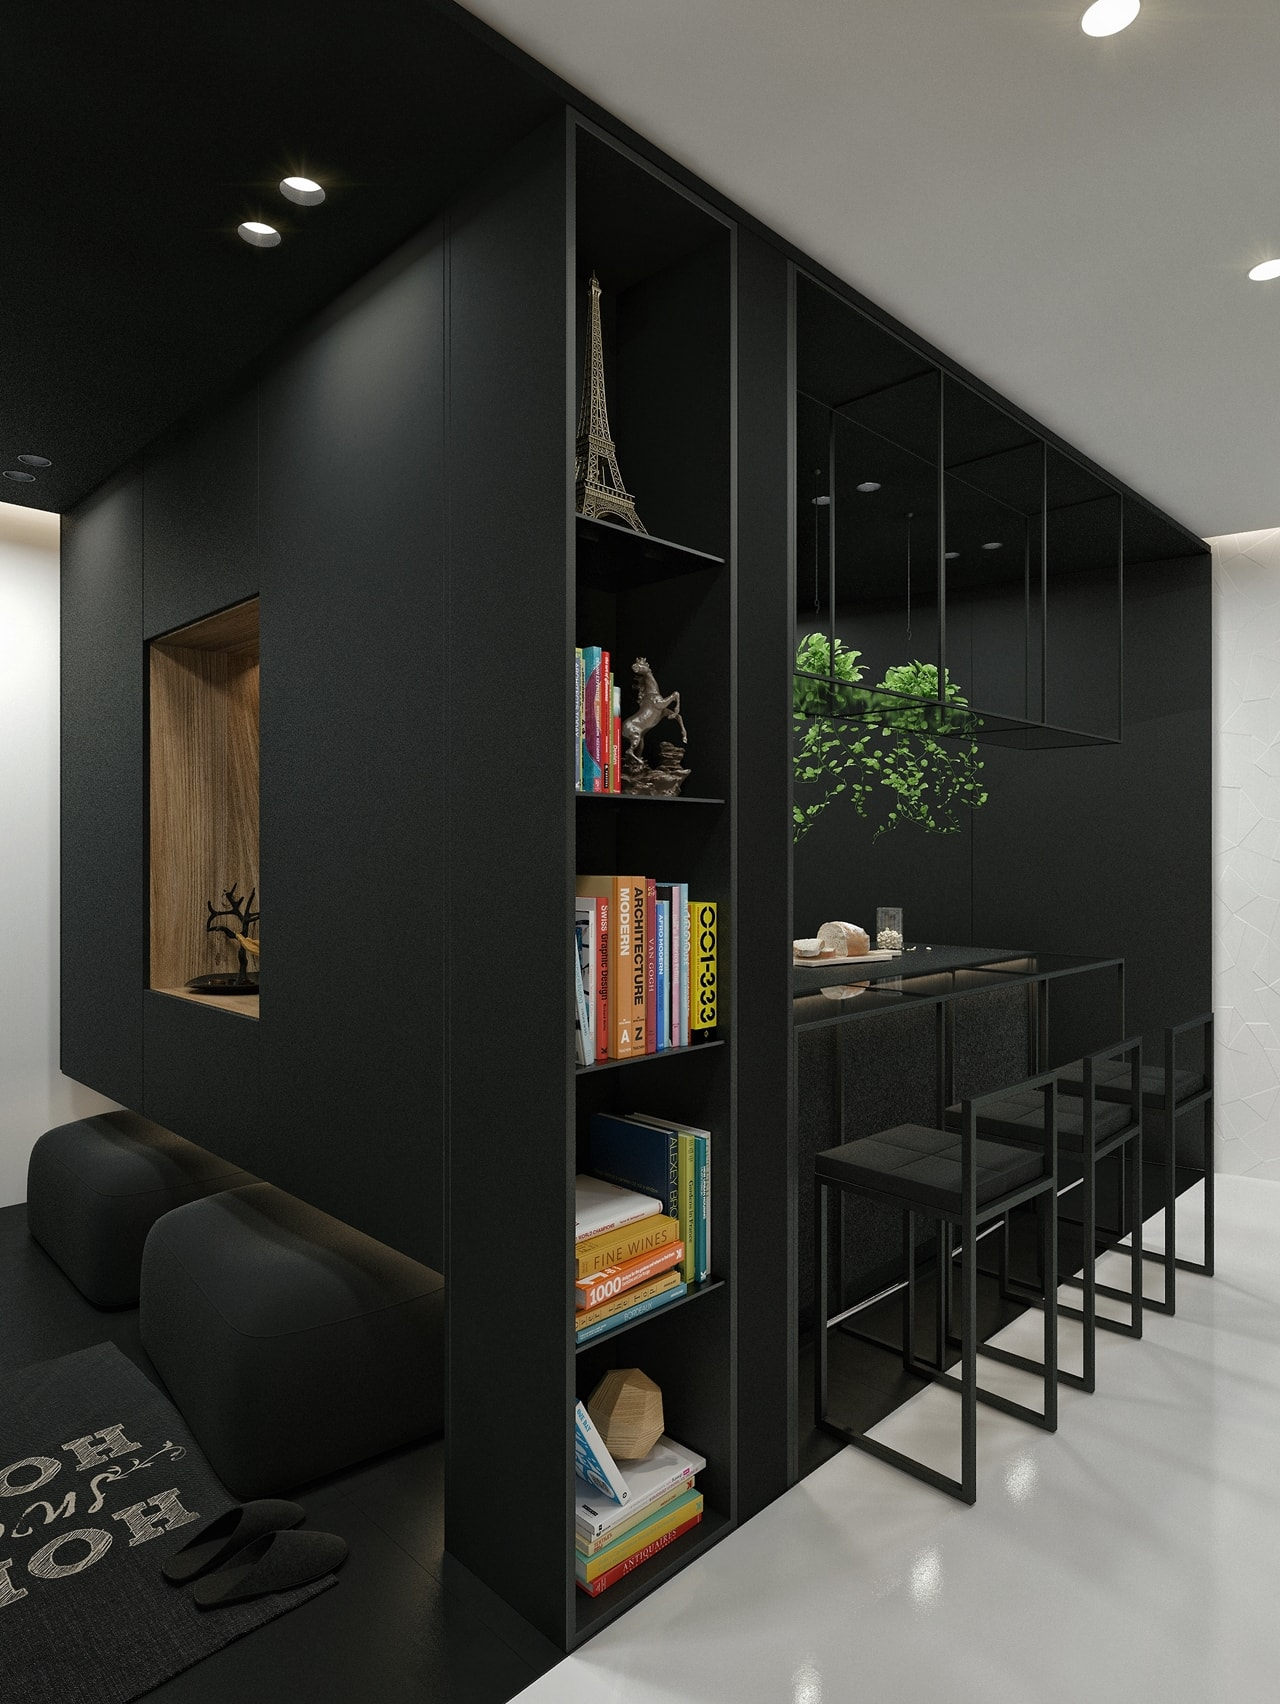 Kitchen Room Interior Design: Black And White Interior Design Ideas: Modern Apartment By